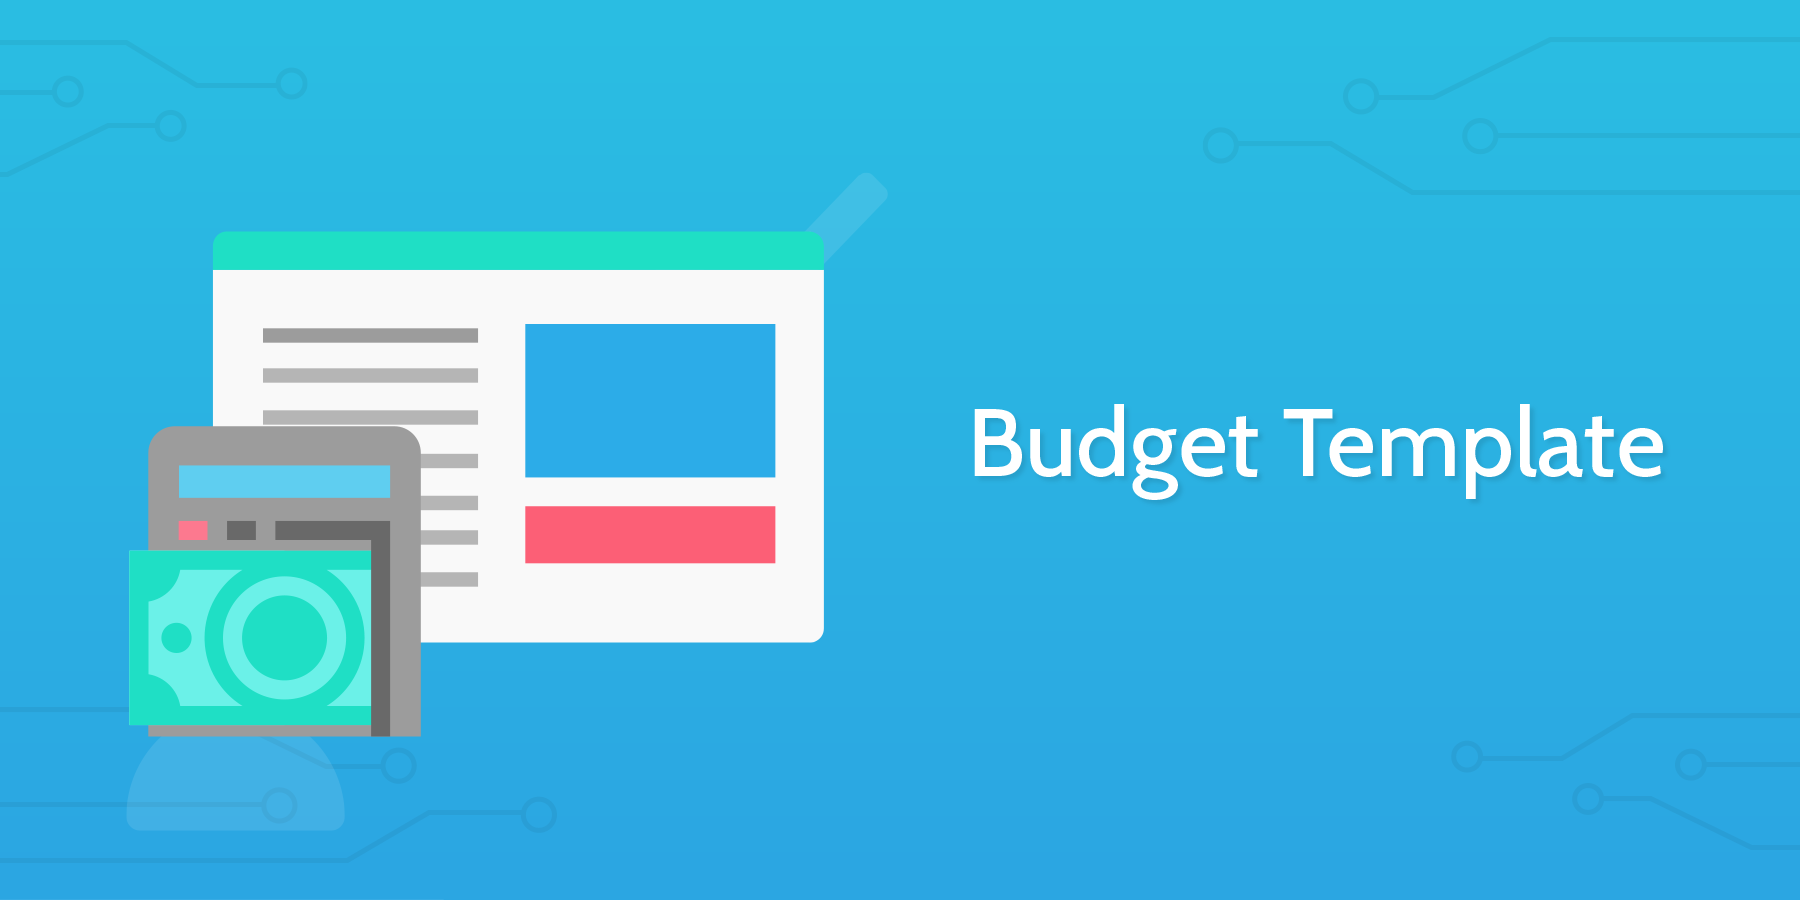 Introduction to the Budget Template: